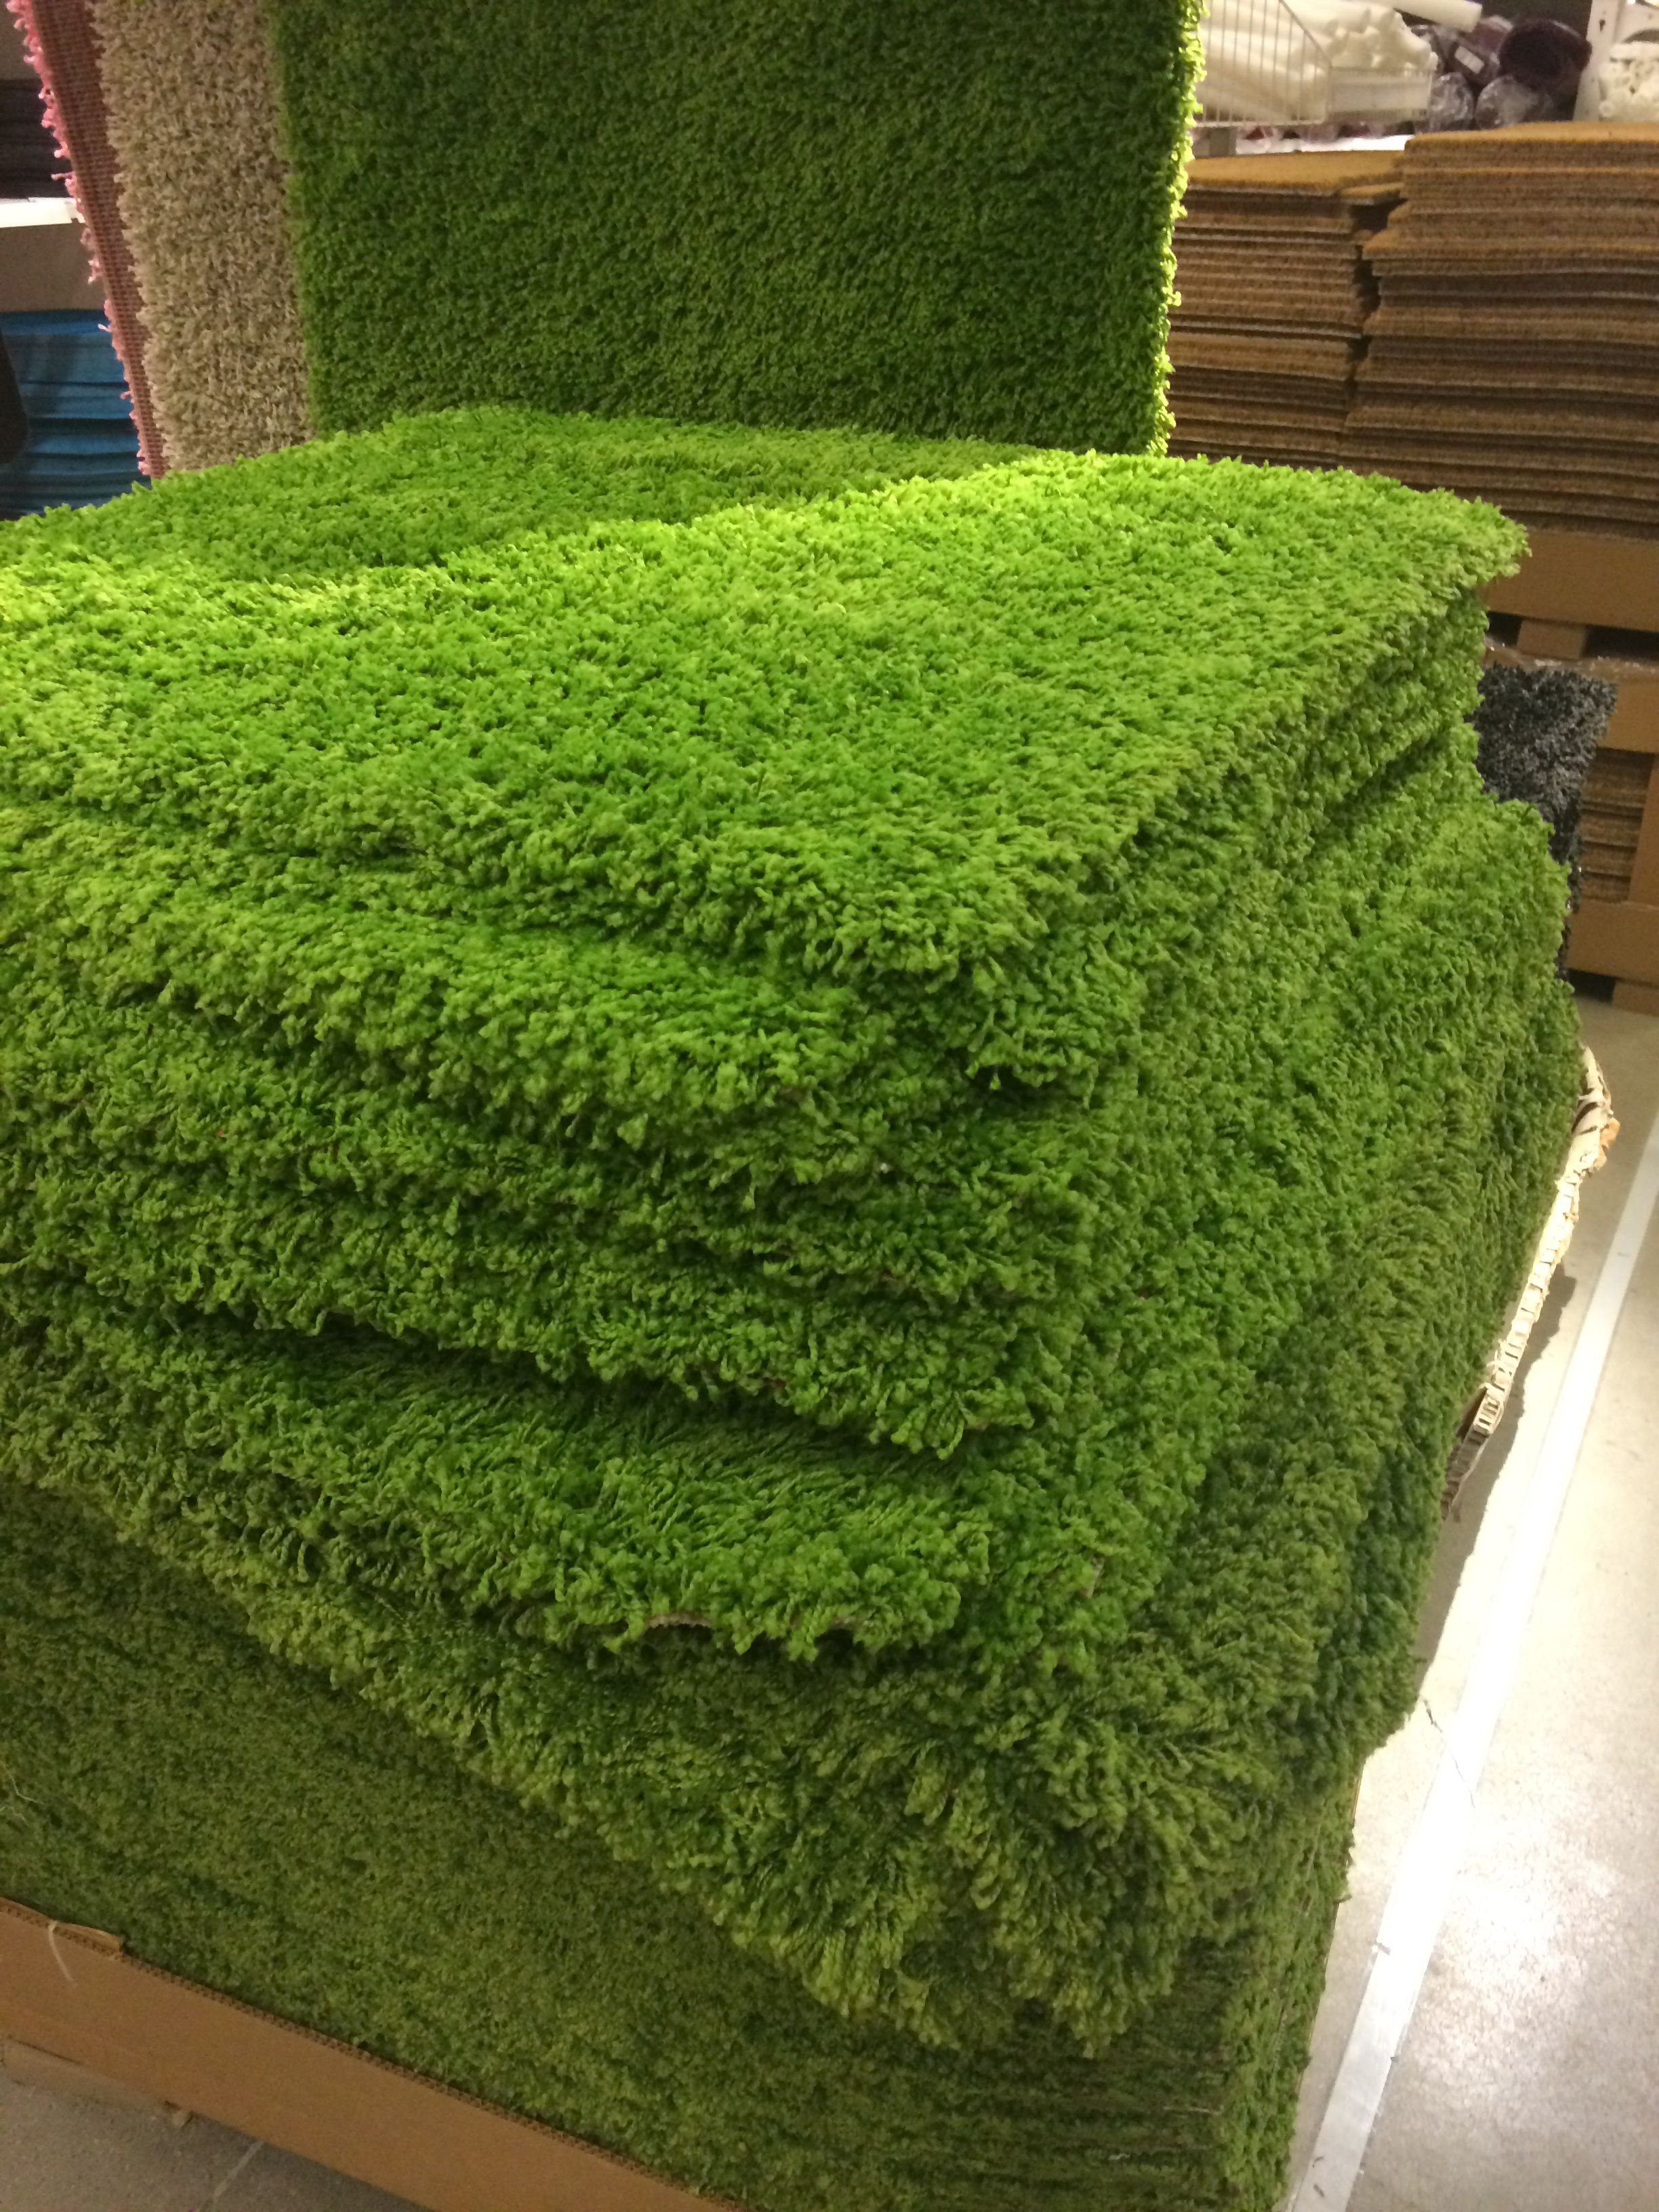 Grass Carpet Squares From Ikea Perfect For A Reggio Inspired